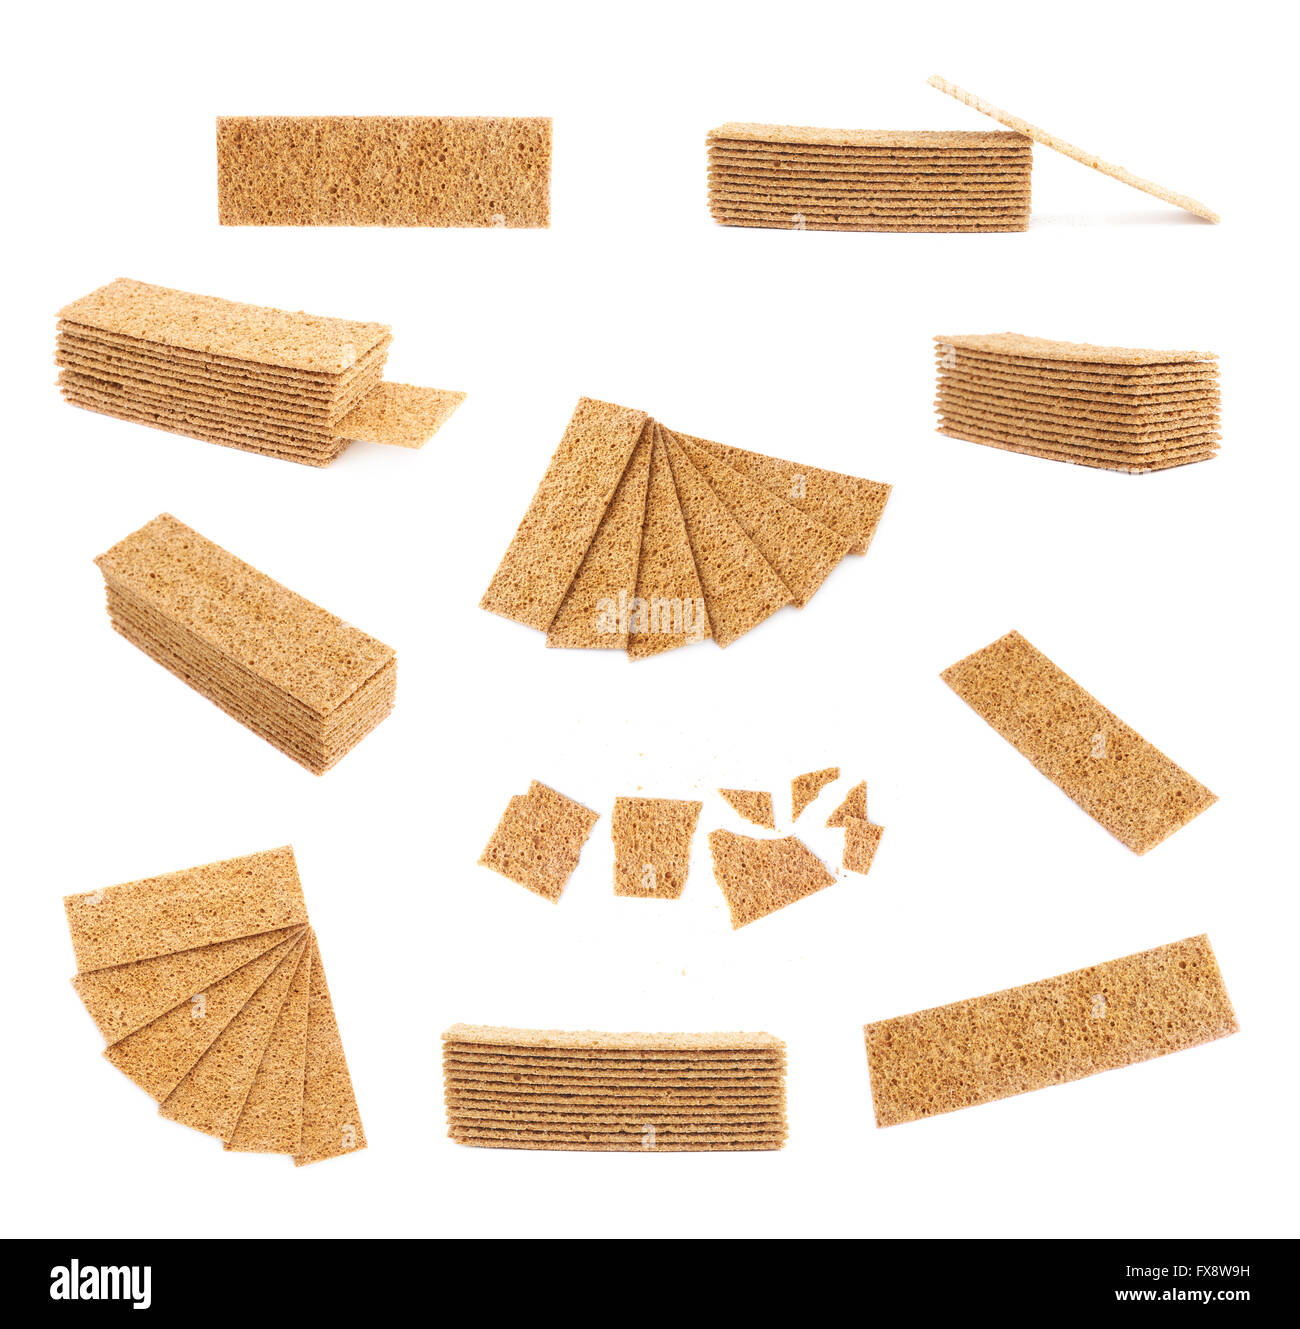 Bread cracker snacks isolated - Stock Image